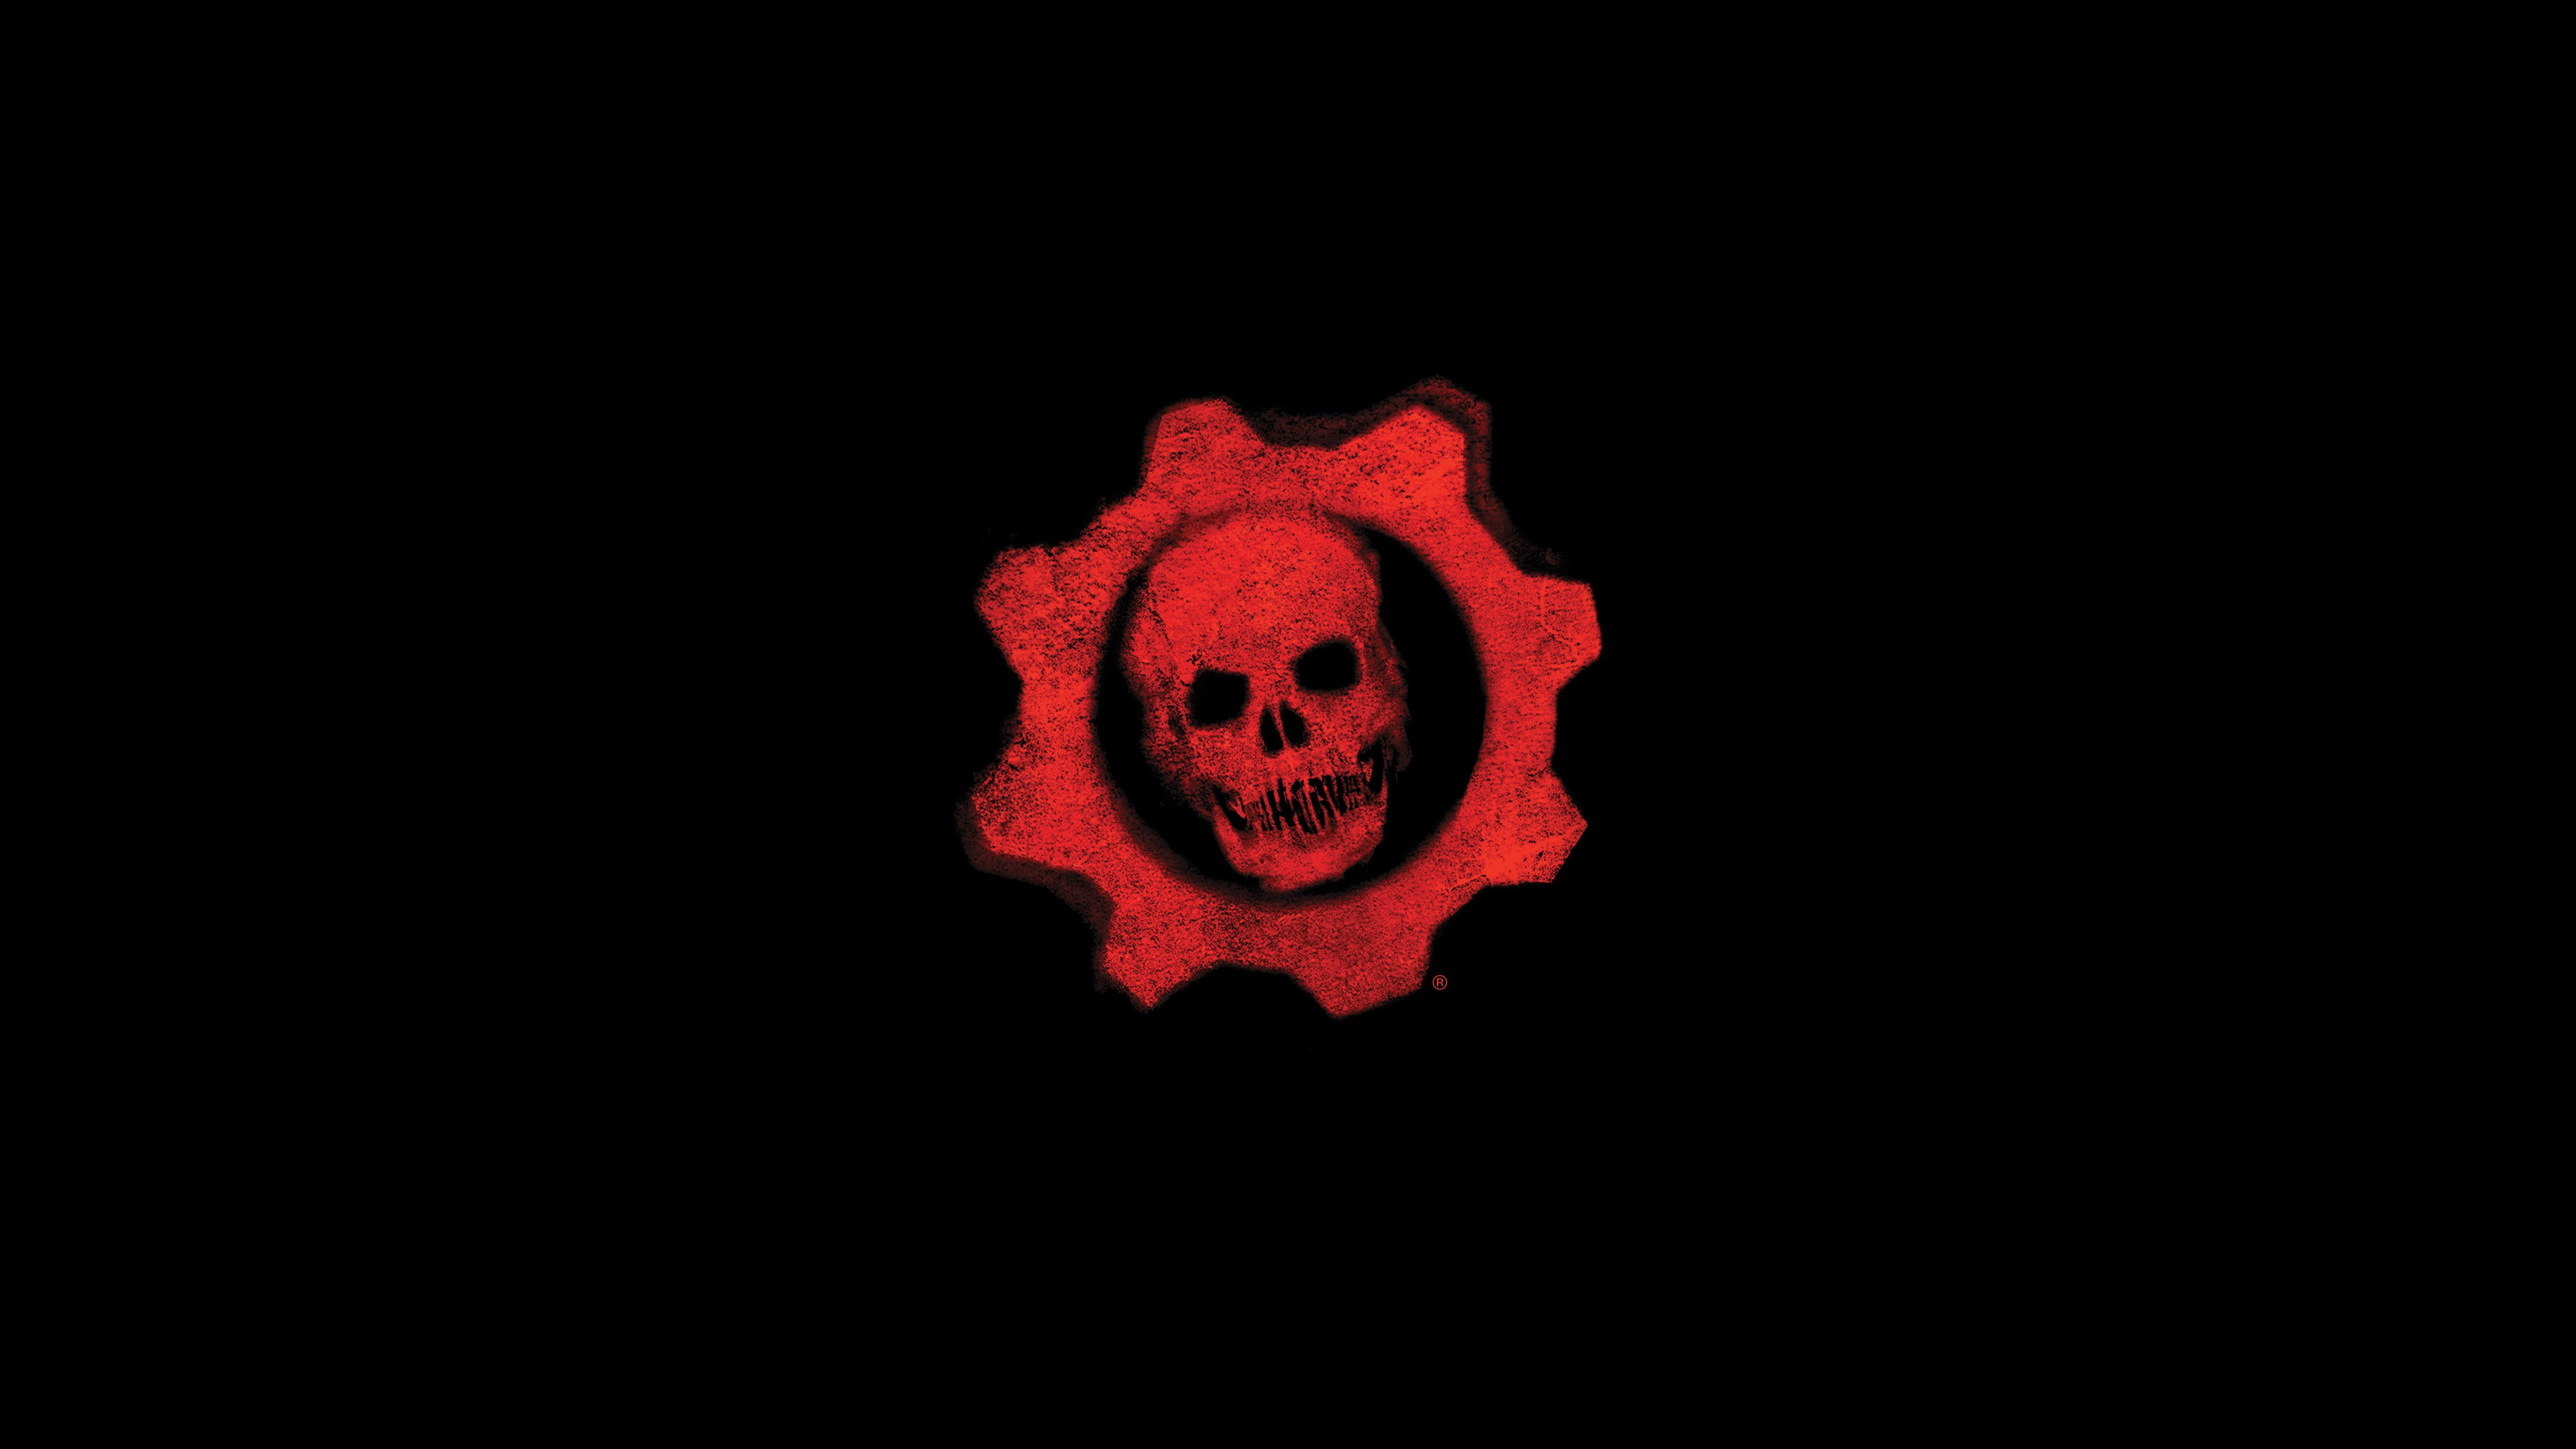 logo gears of war 4k, hd games, 4k wallpapers, images, backgrounds